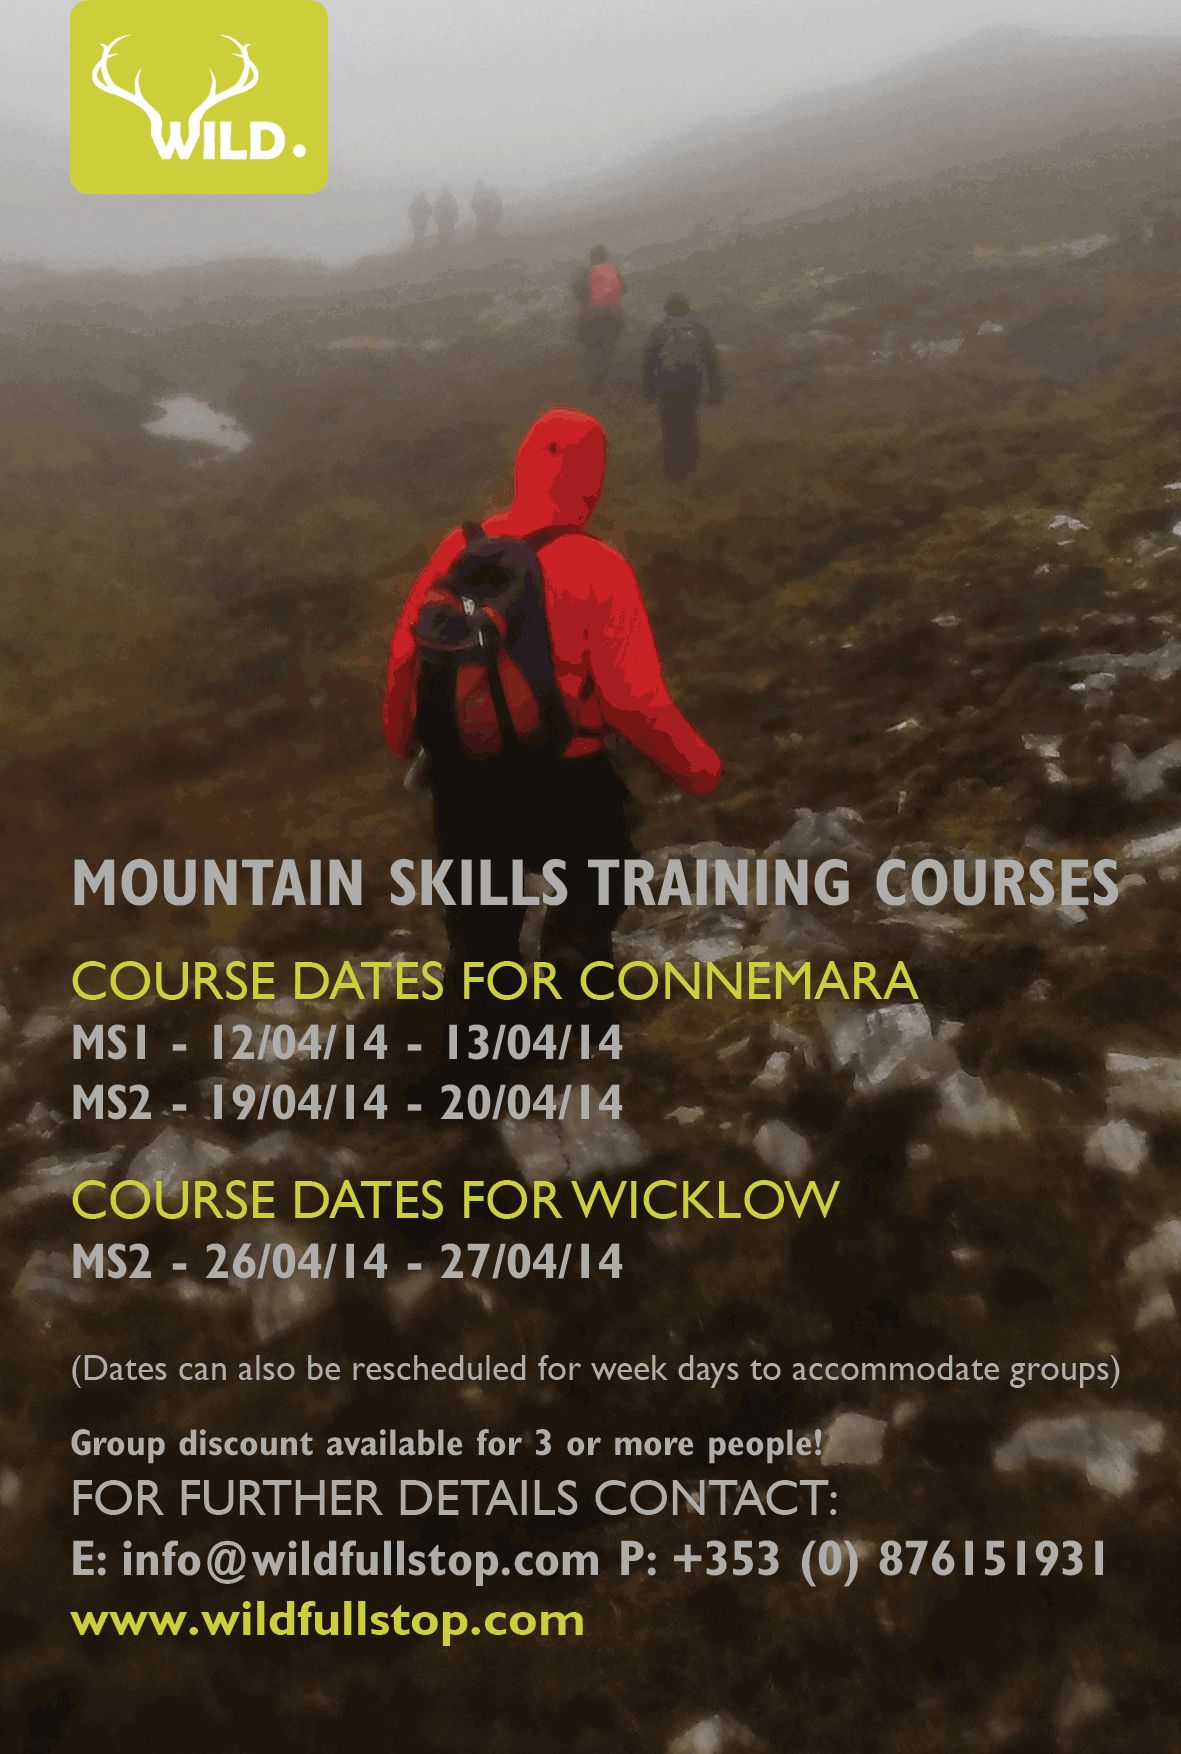 Mountain Skills Training Courses in Connemara & Wicklow with wildfullstop